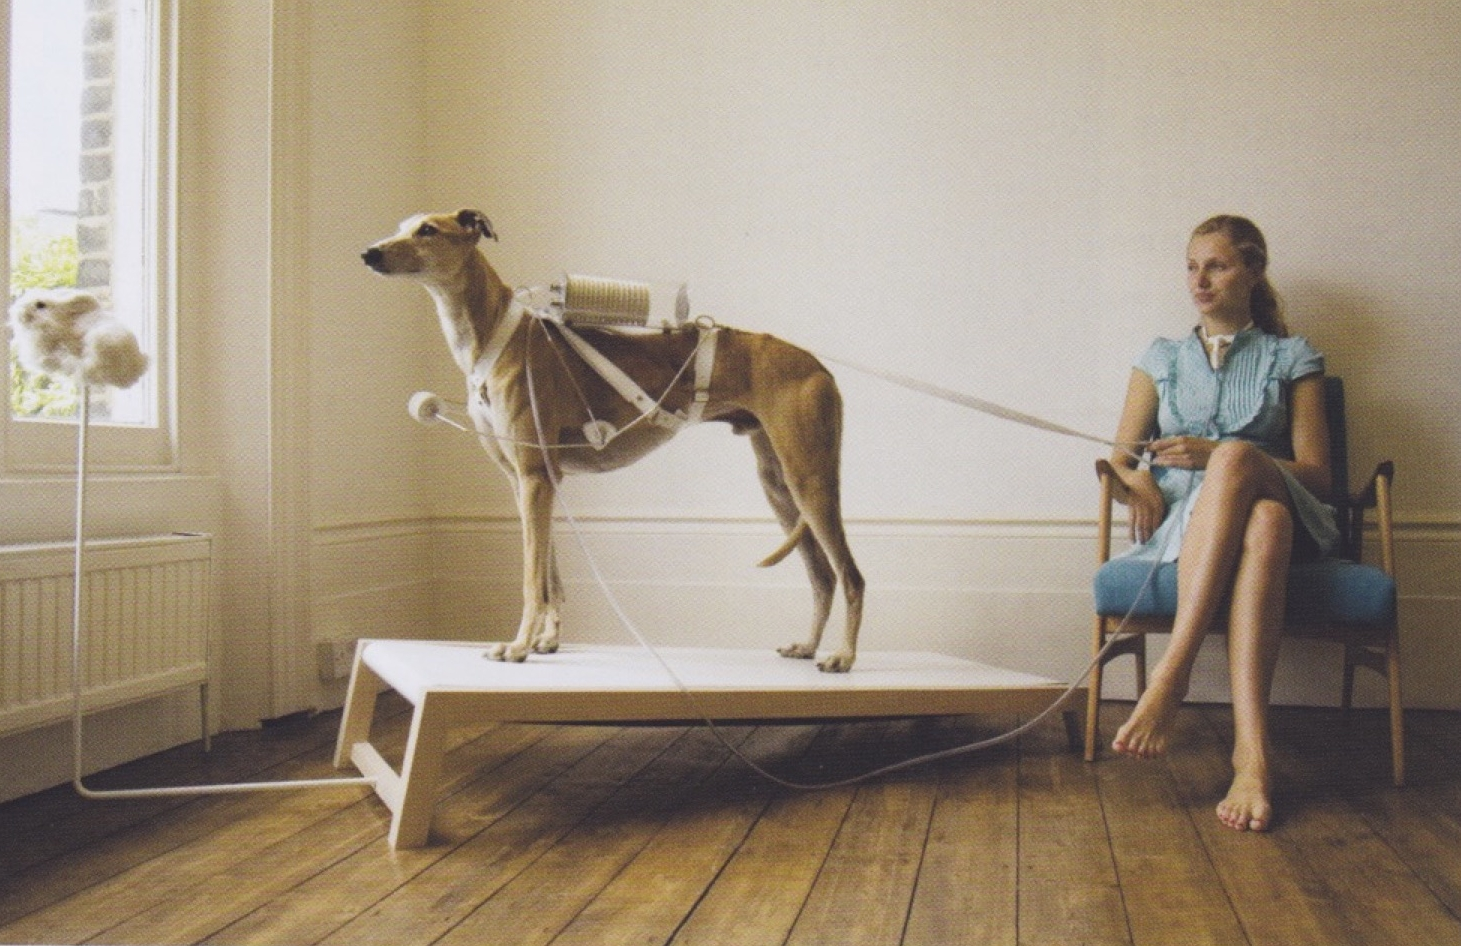 Revital Cohen,  Respiratory Dog , 2008, from the series  Life Support